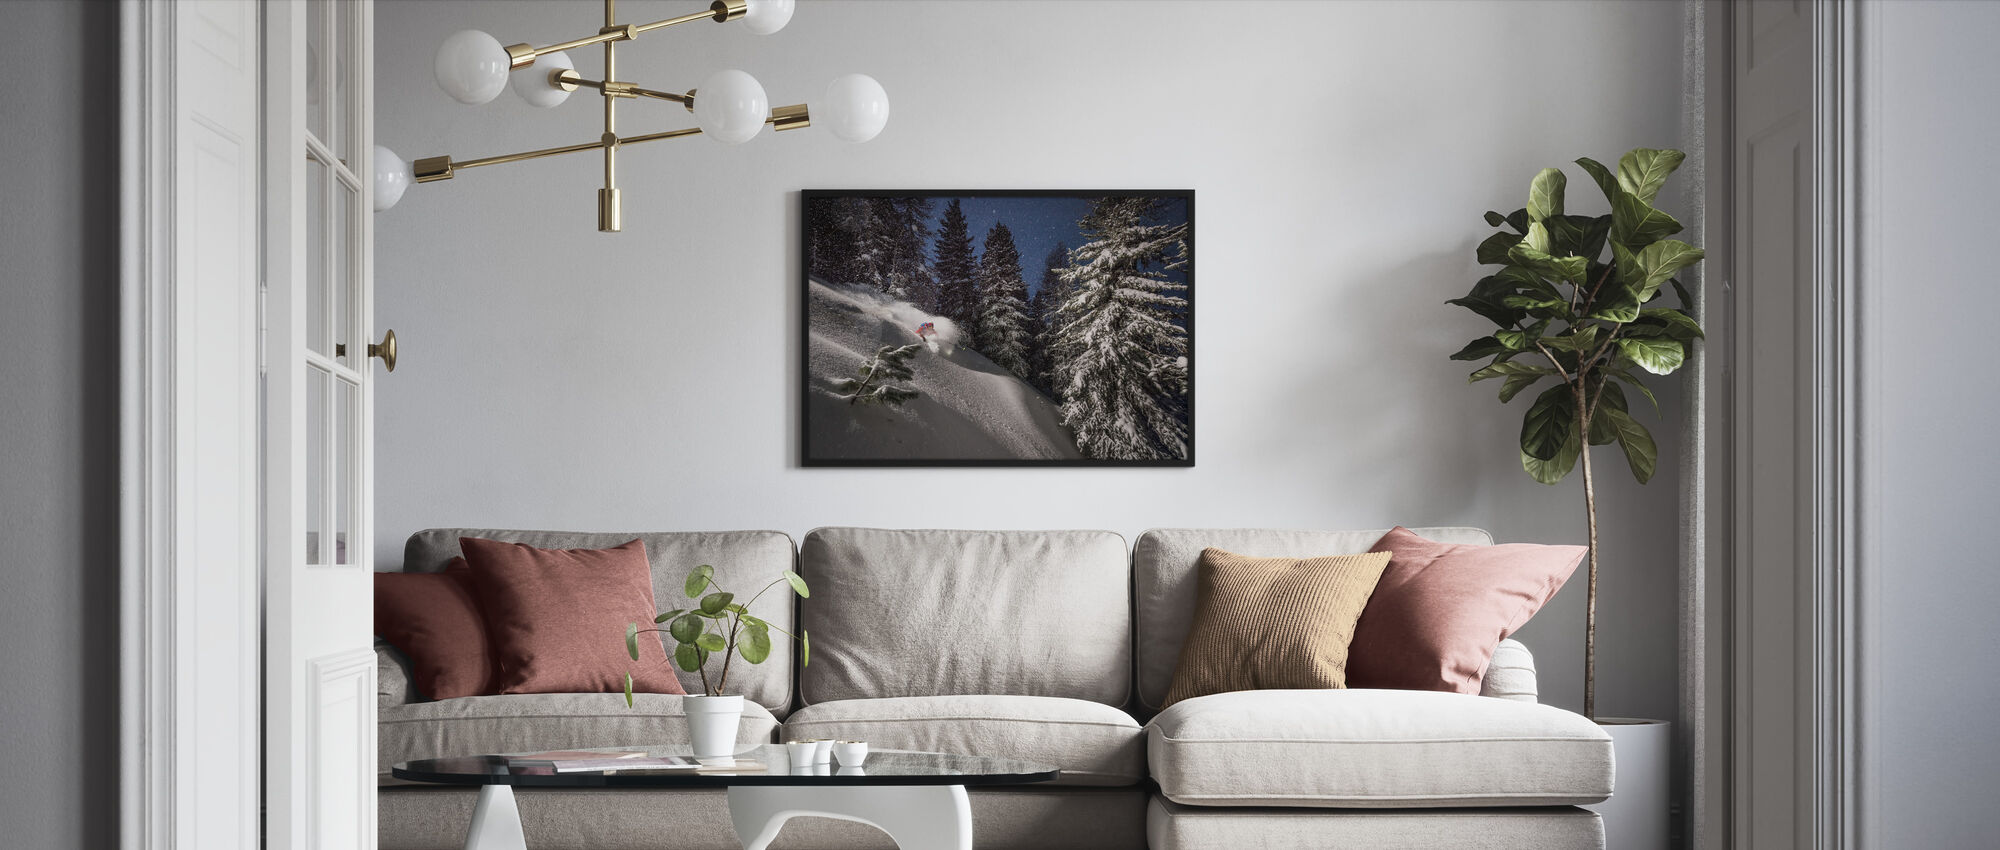 Night Powder Turns with Adrien Coirier - Framed print - Living Room